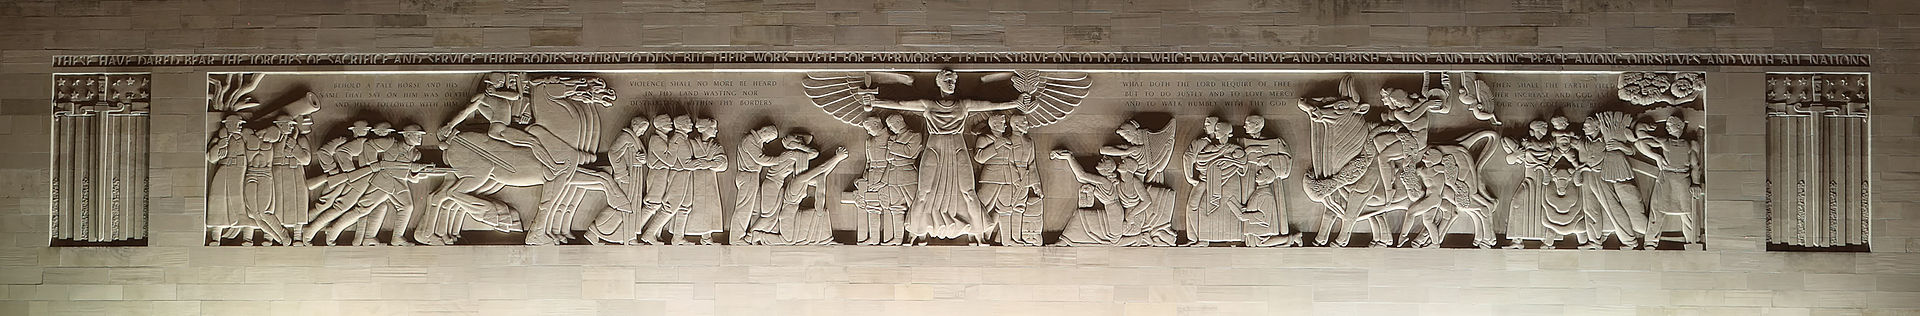 War Memorial Stone Frieze